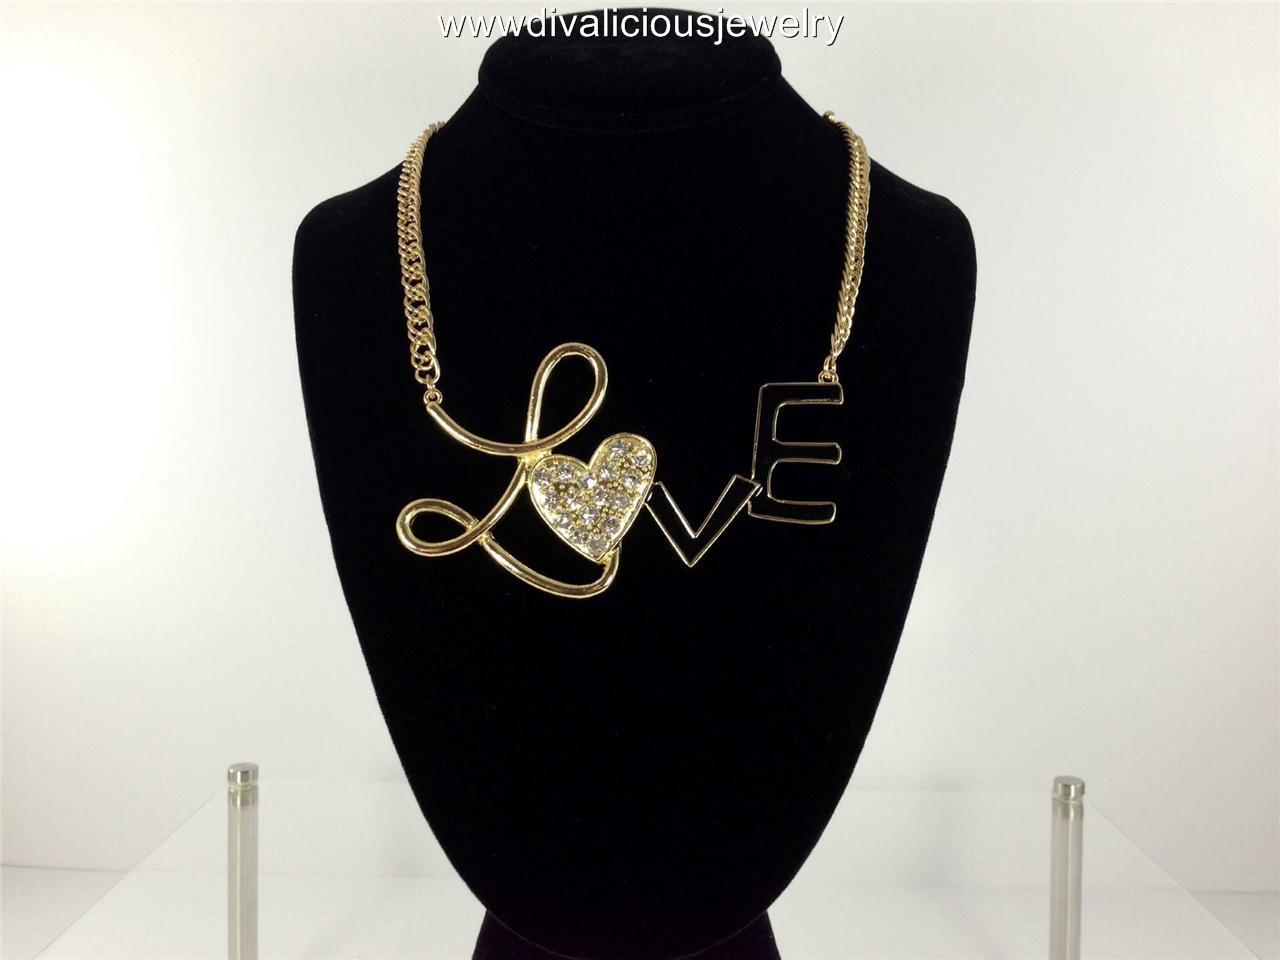 Crystal LOVE Heart Statement Bling Diva Necklace - Gold or Silver